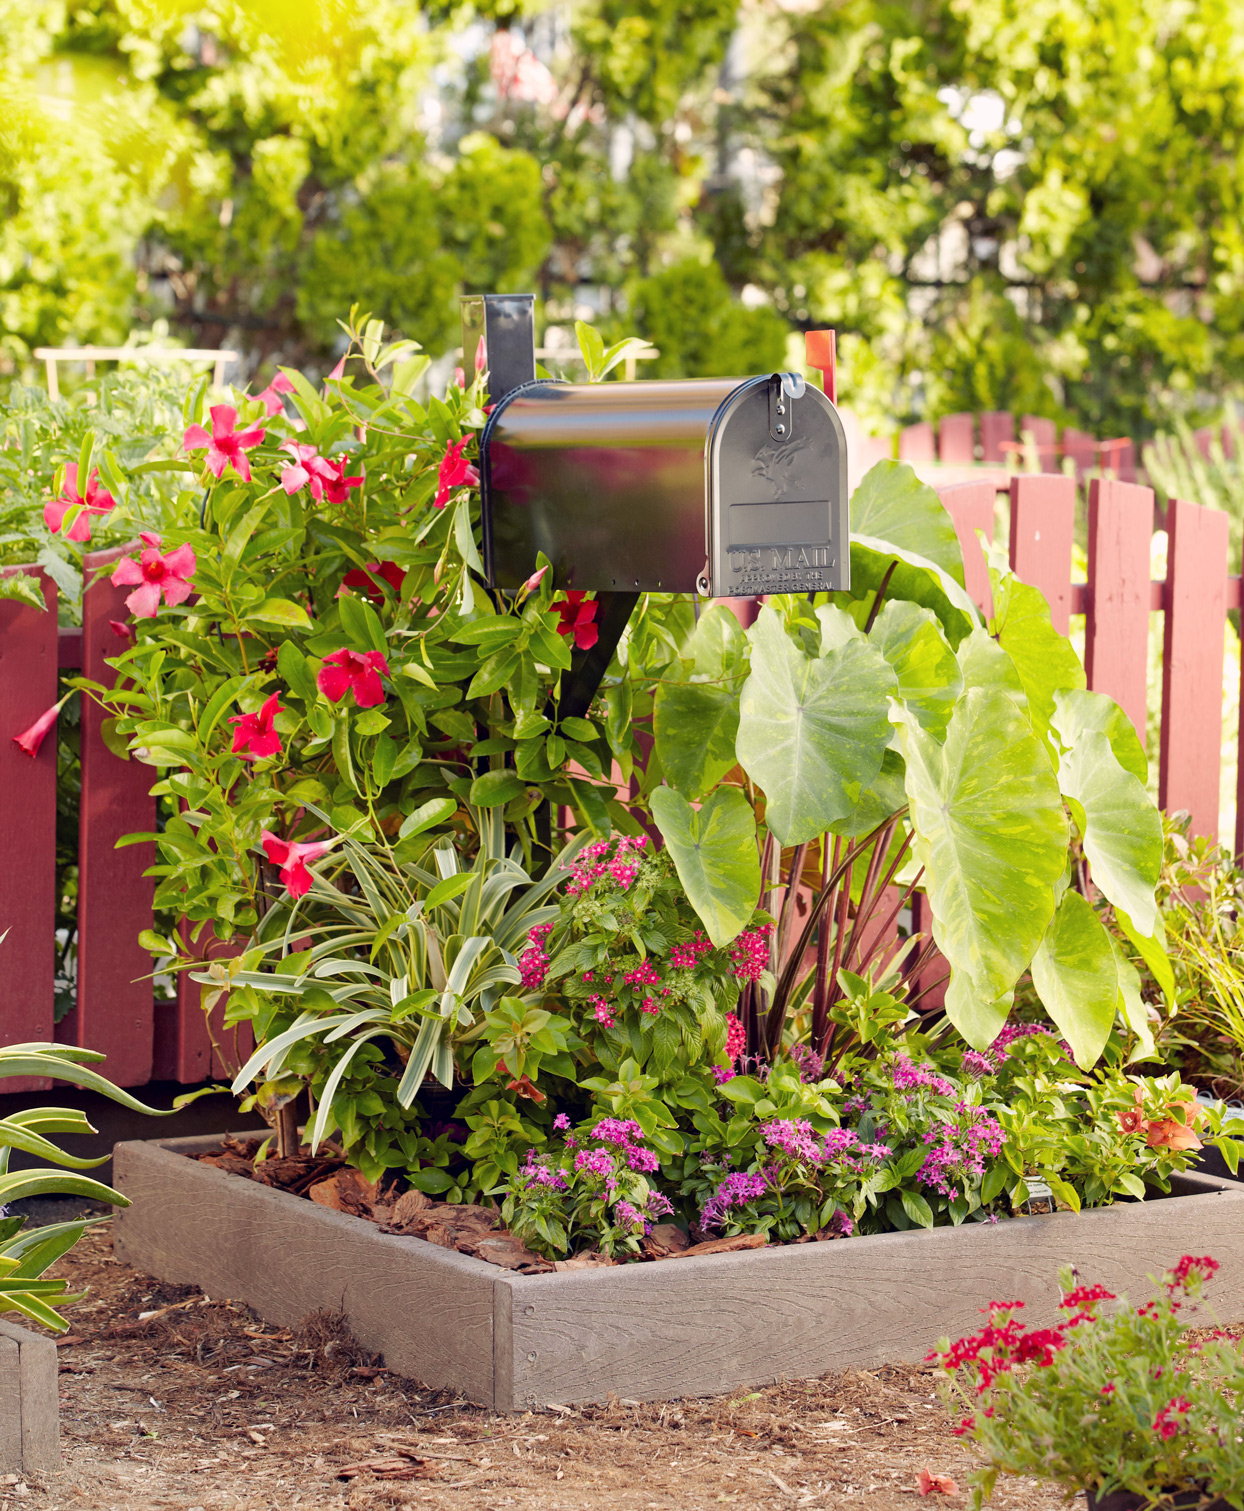 Curb Appeal in a Day: Do a Mailbox Makeover